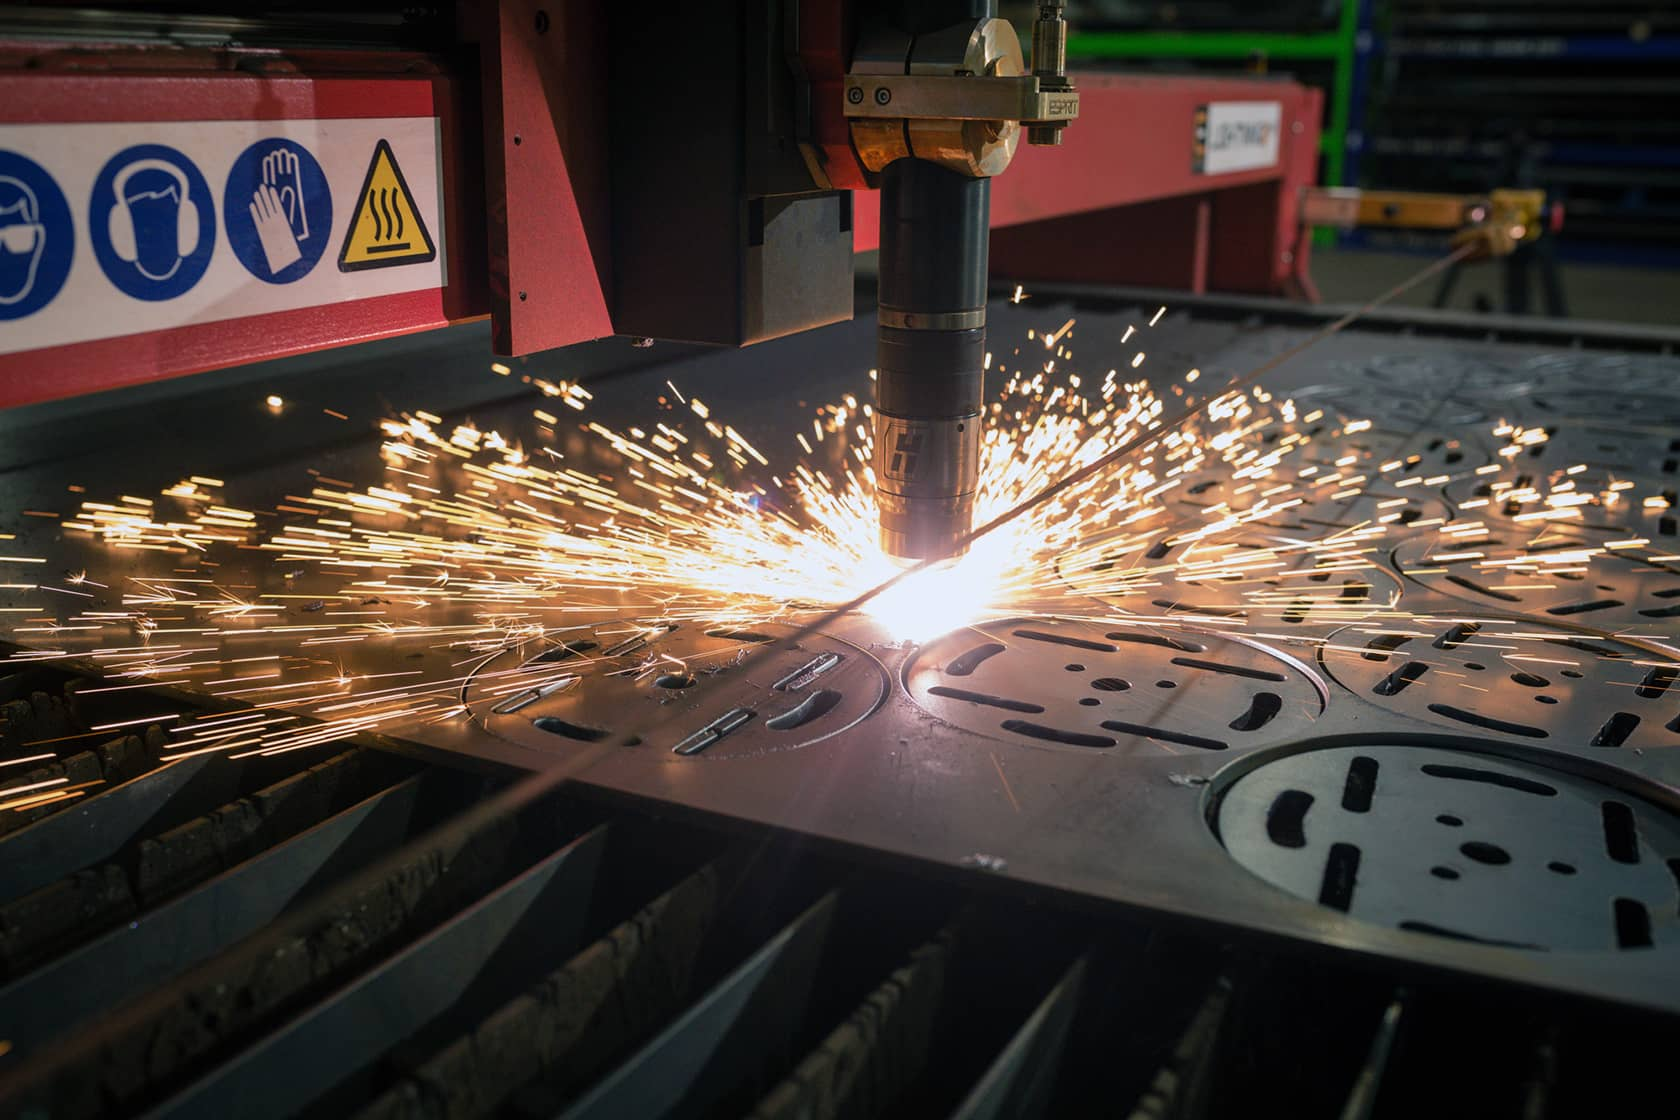 Ground Screw Manufacturing in the UK